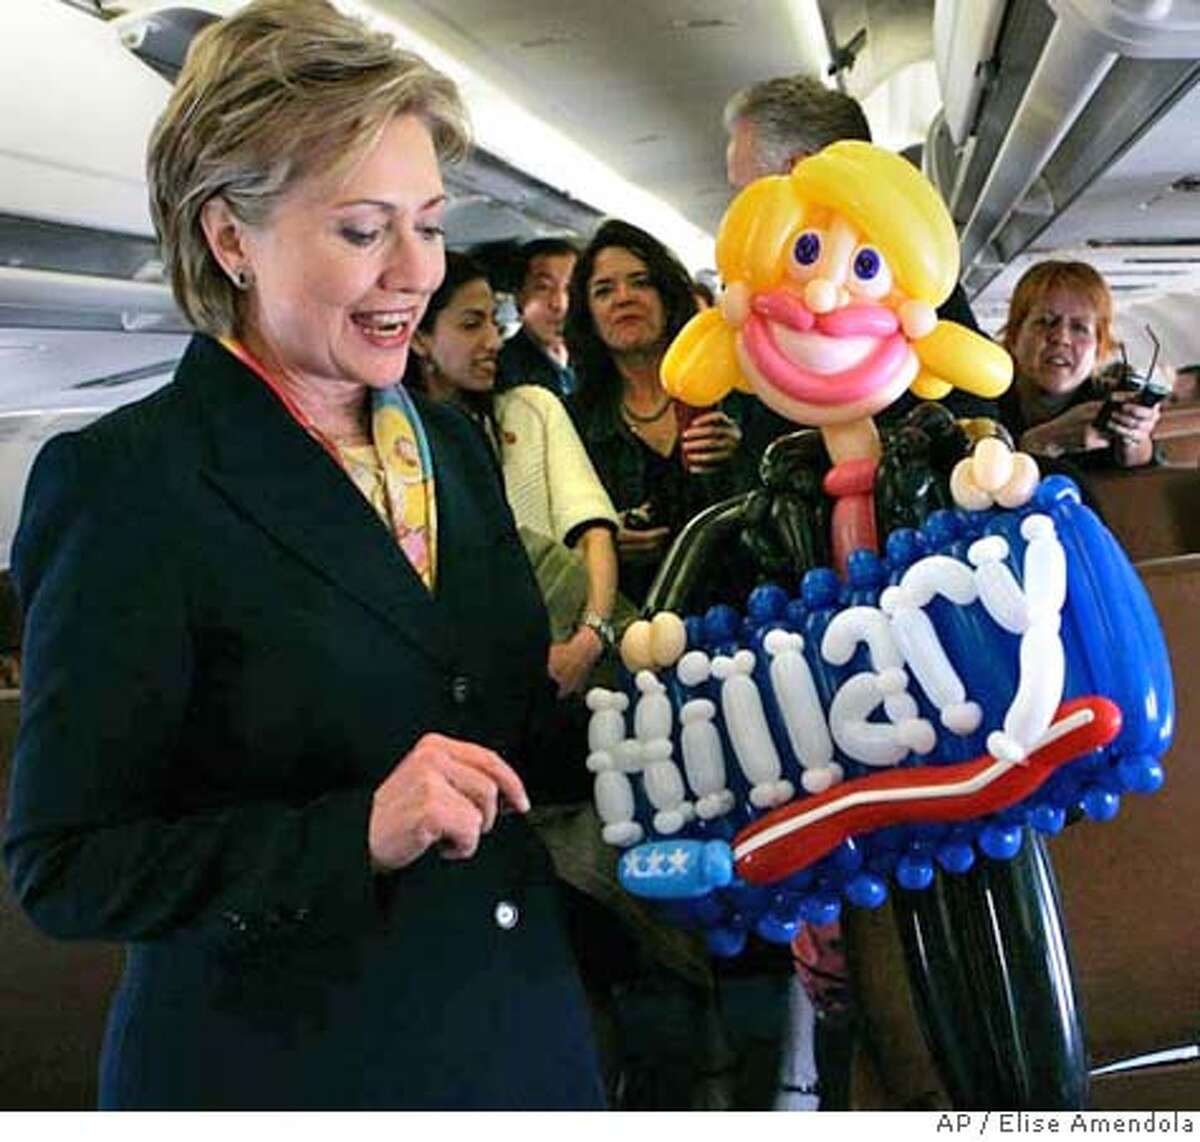 ###Live Caption:Democratic presidential hopeful Sen. Hillary Rodham Clinton, D-N.Y., shows the media a Hillary doll made of balloons given to her by a supporter, Tuesday, April 29, 2008, on her press plane in Raleigh, N.C. (AP Photo/Elise Amendola)###Caption History:Democratic presidential hopeful Sen. Hillary Rodham Clinton, D-N.Y., shows the media a Hillary doll made of balloons given to her by a supporter, Tuesday, April 29, 2008, on her press plane in Raleigh, N.C. (AP Photo/Elise Amendola)###Notes:Hillary Rodham Clinton###Special Instructions: